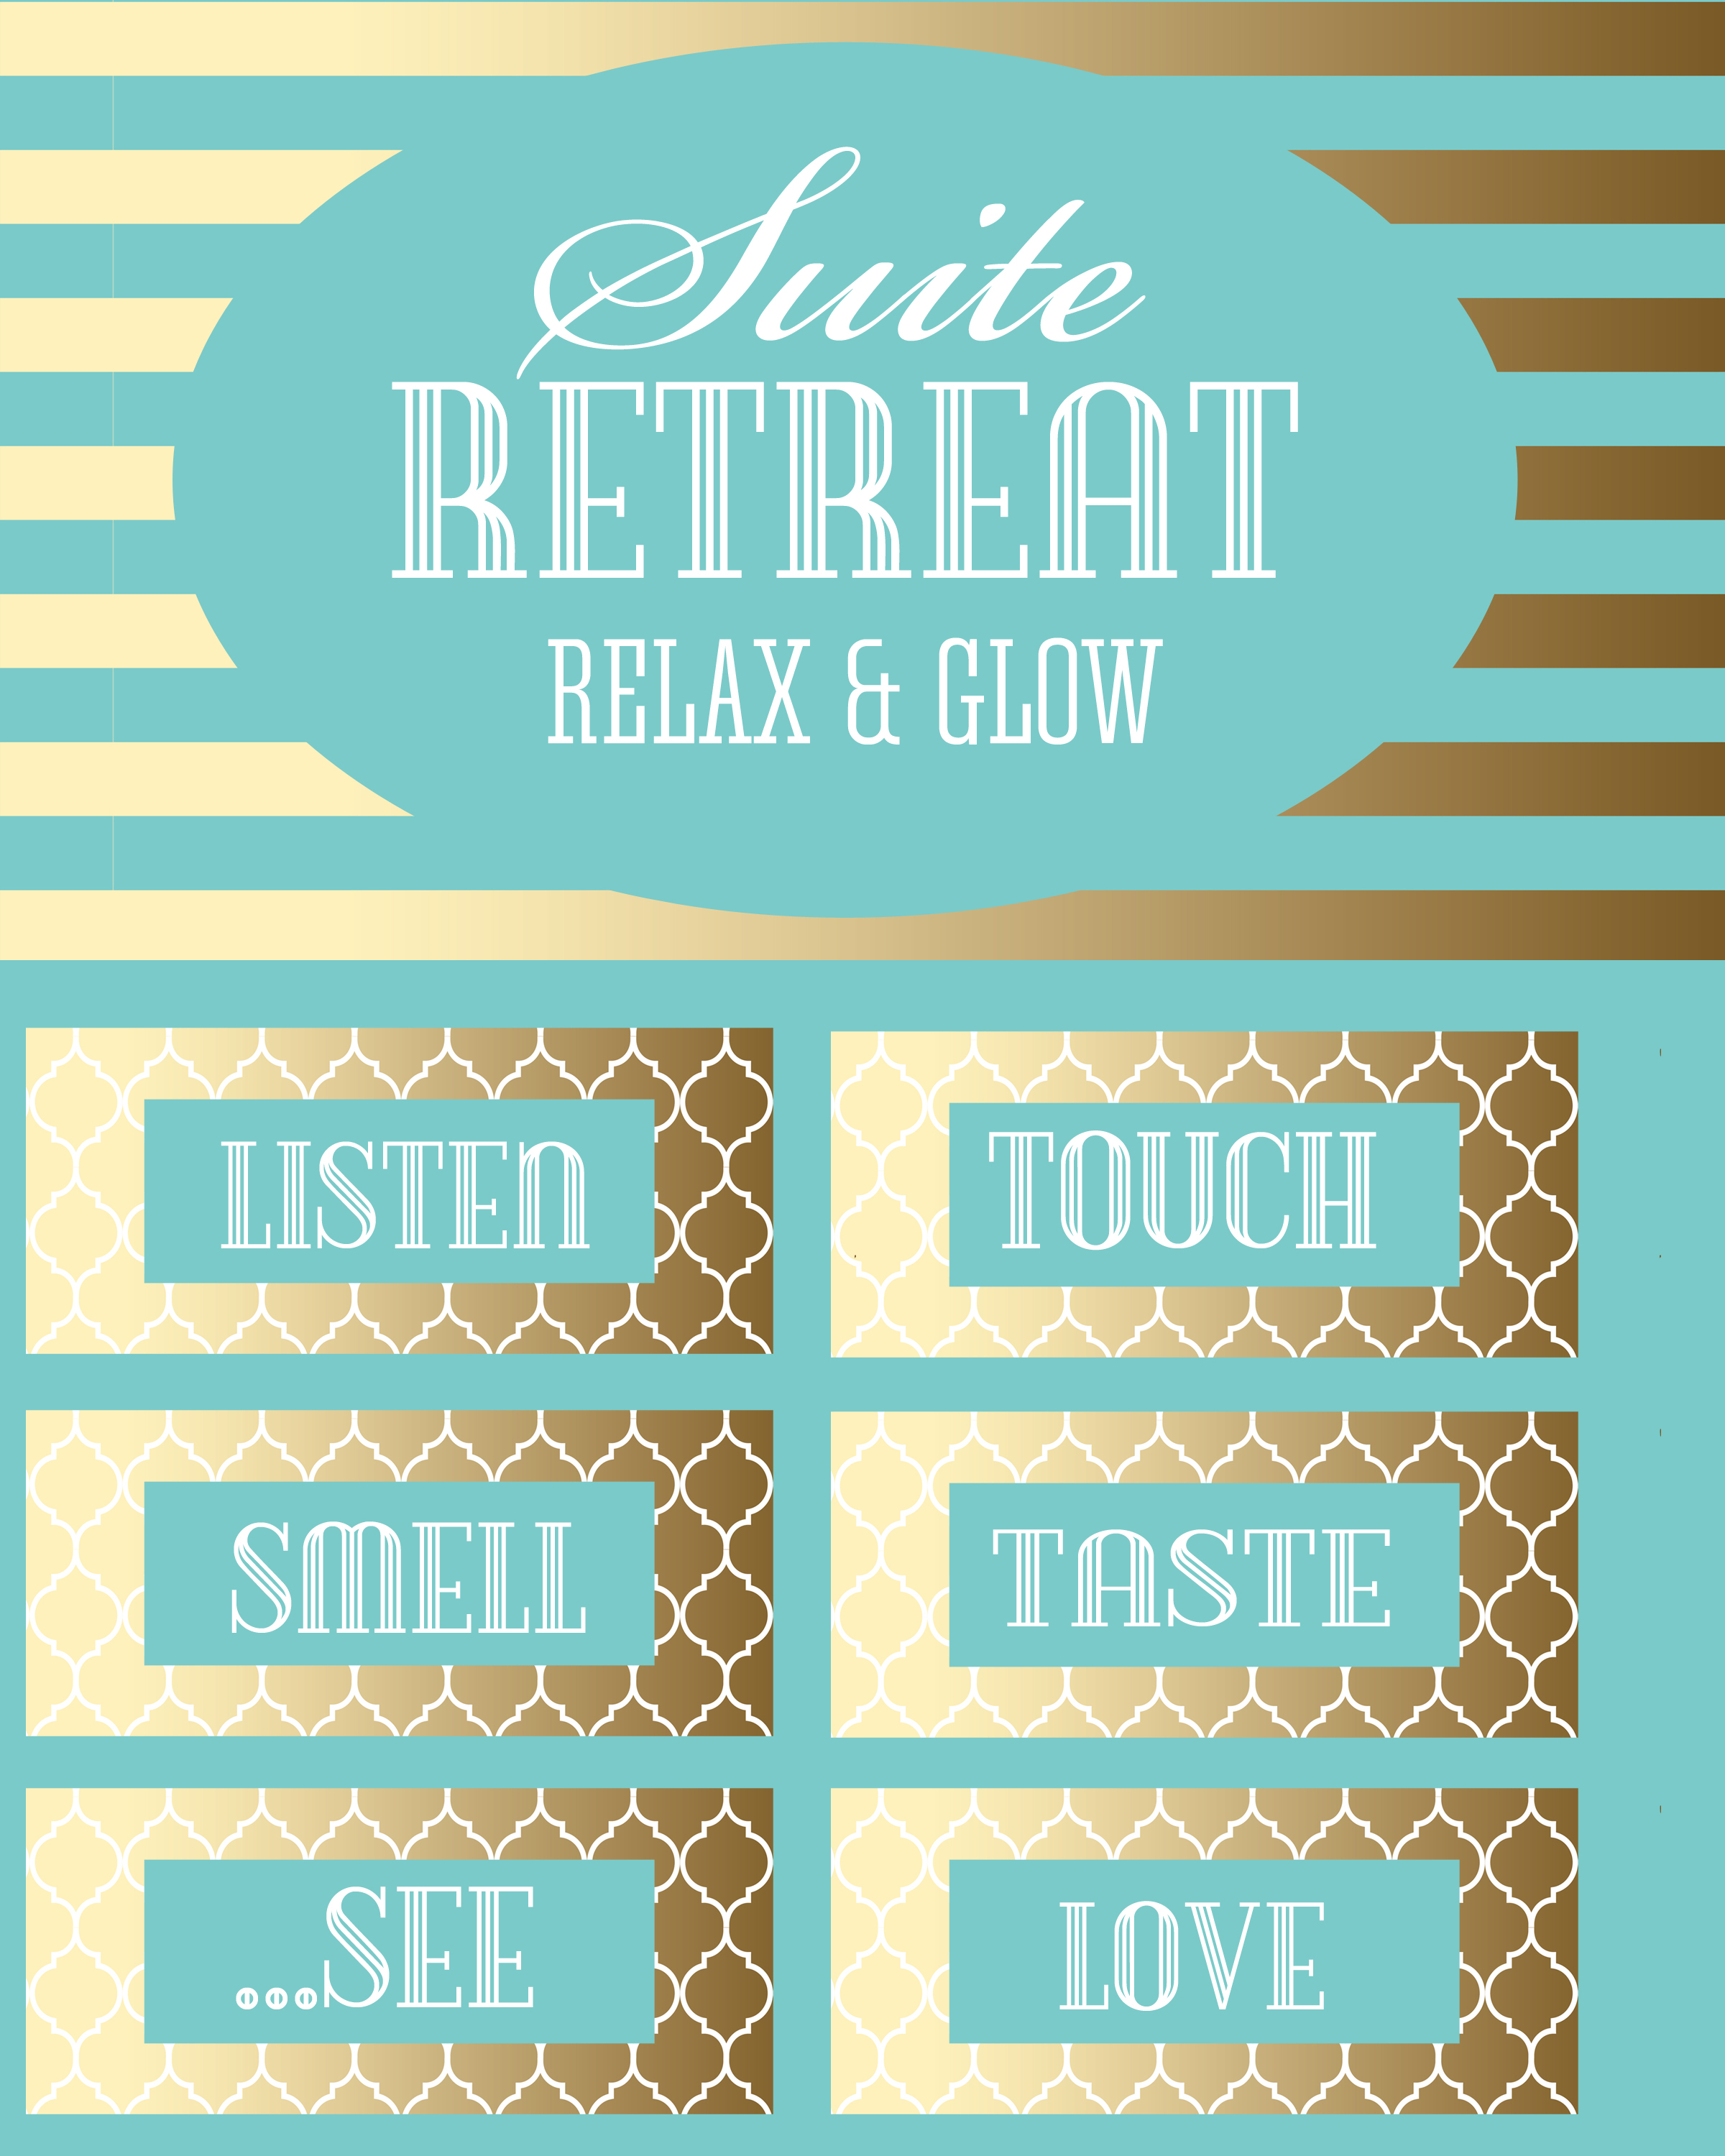 Free Printables to make this adorable Suite Retreat Basket. Perfect for a romantic date and